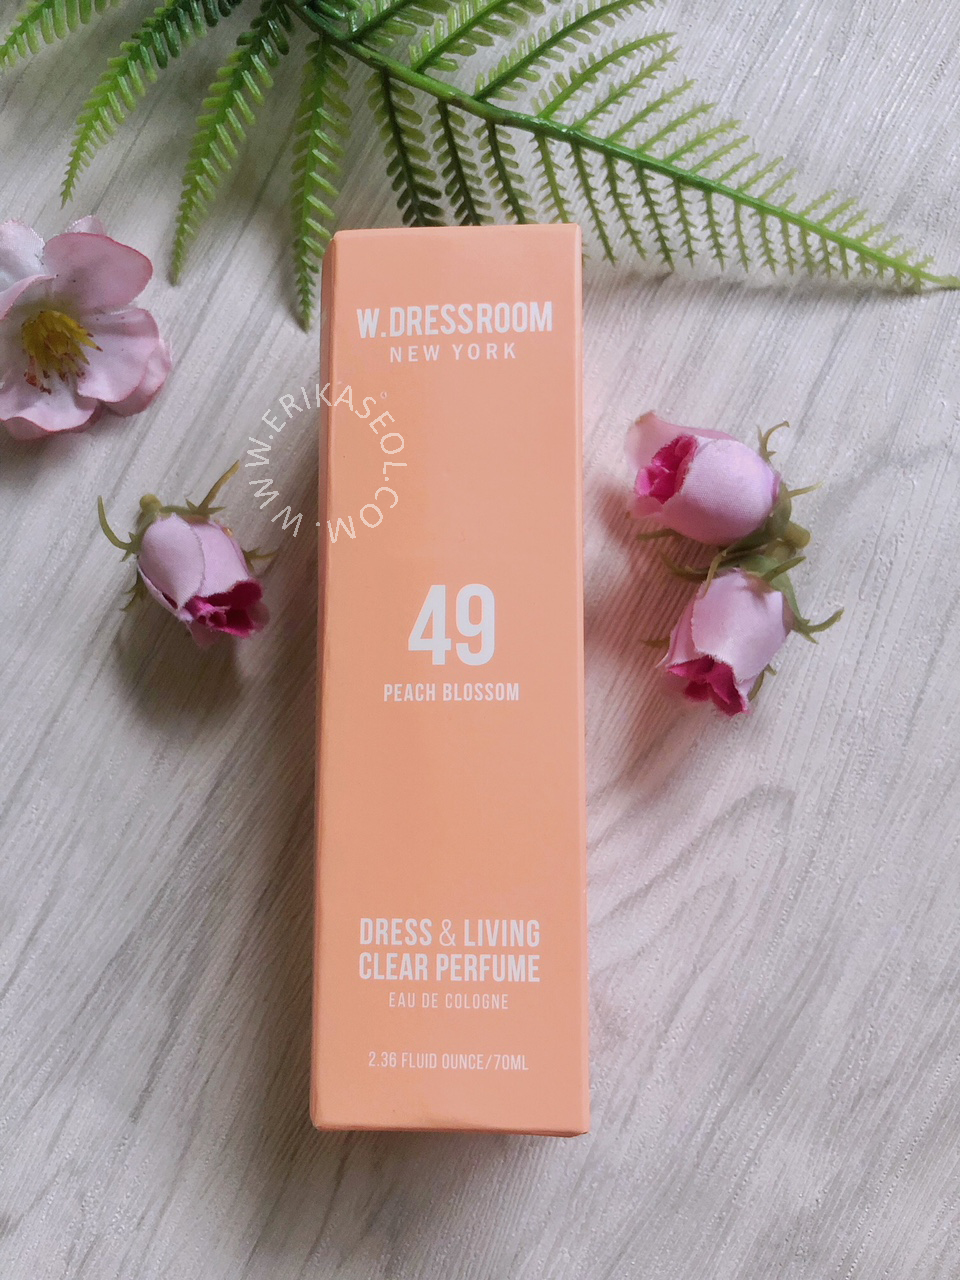 Review W Dressroom No 97 April Cotton And 49 Peach Blossom New York Drees Living Clear Perfume 70ml Ok Next One Is Scent This Name Have Been Used By Hwang Minhyun Wanna Member The Box I Got A Bit Different With